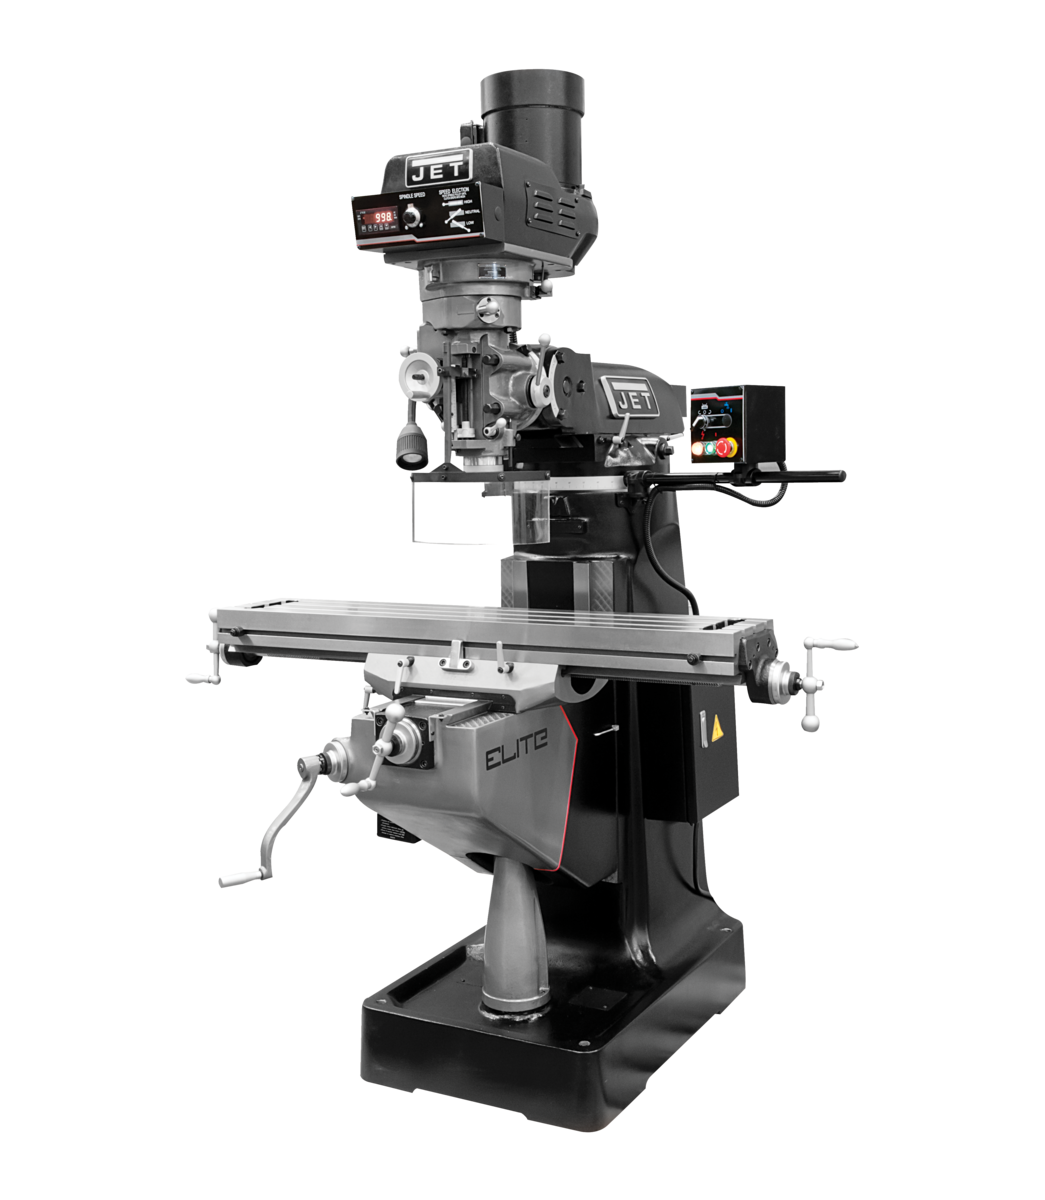 EVS-949 Mill with 3-Axis ACU-RITE 203 (Knee) DRO and Servo X-Axis Powerfeed